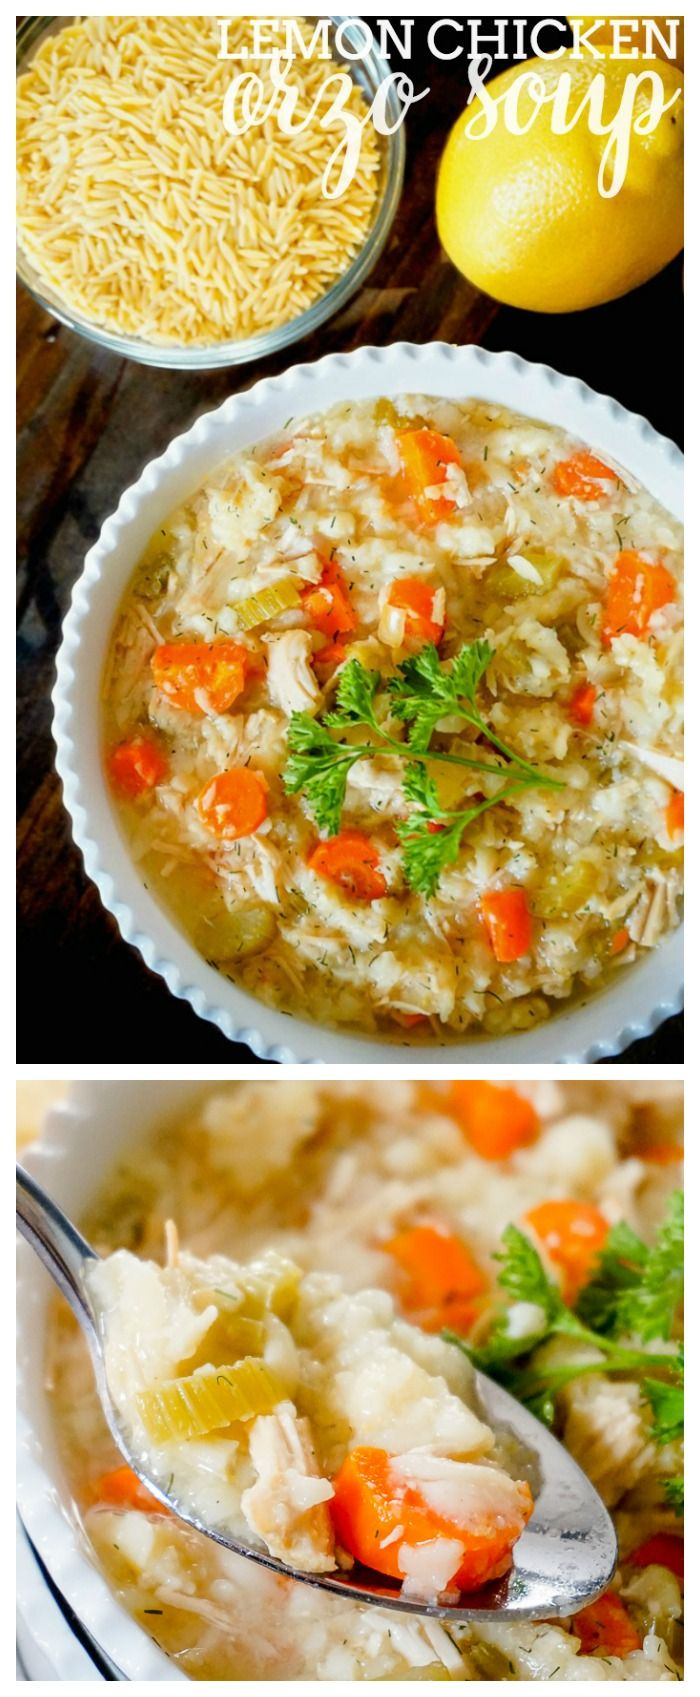 Slow Cooker Lemon Chicken Orzo Soup - A deliciously light and fresh soup recipe inspired by Panera's soup recipe. | The Love Nerds